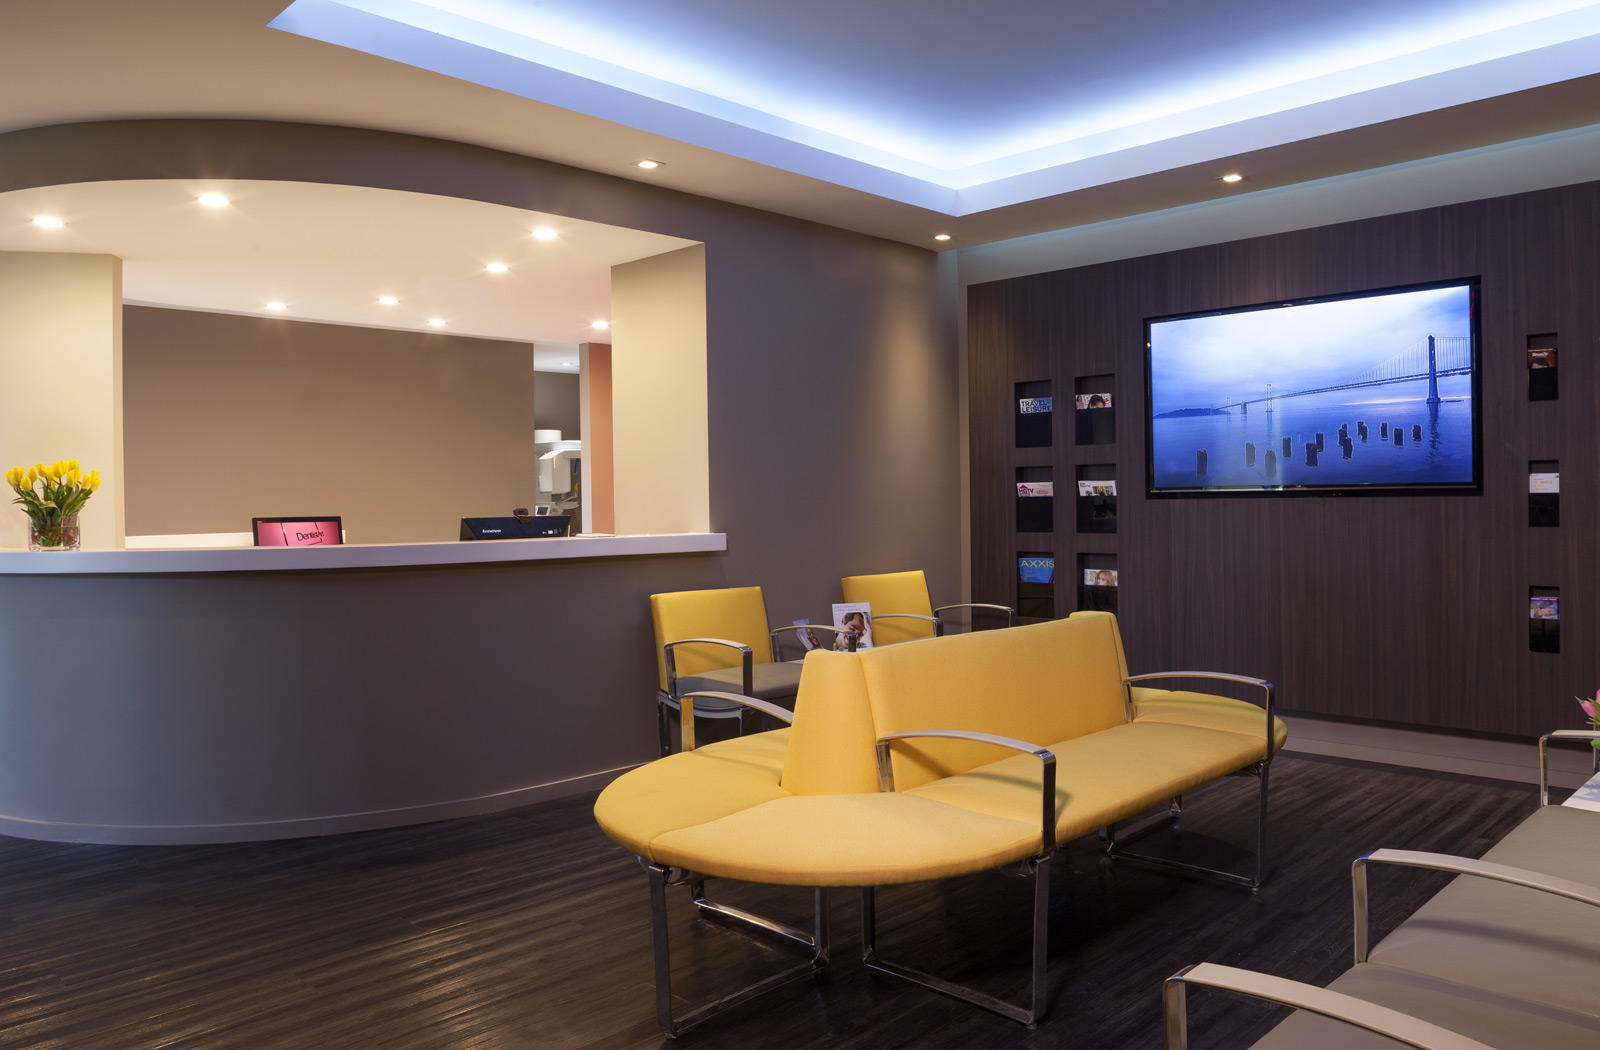 Lobby with yellow chairs, tv & front desk